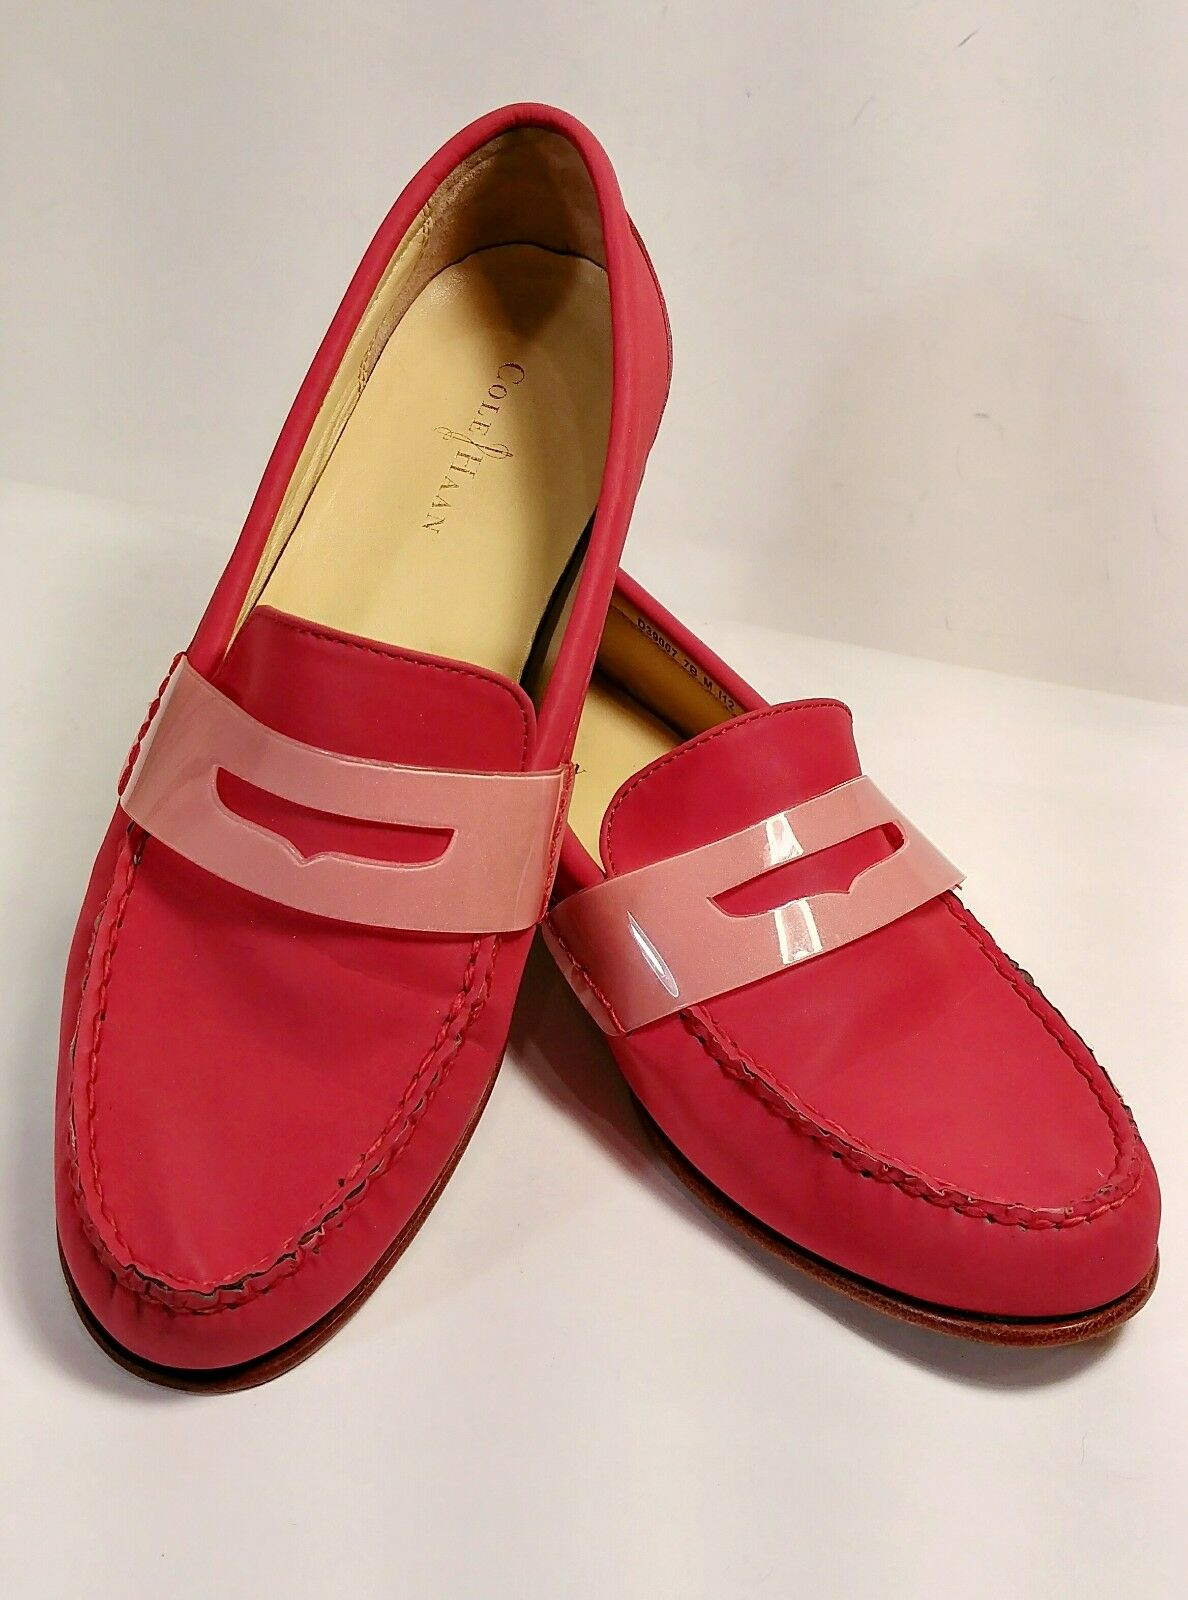 Cole Haan Air Monroe Red Reflective Slip-On Penny Loafers Women's Size 7M *EUC*